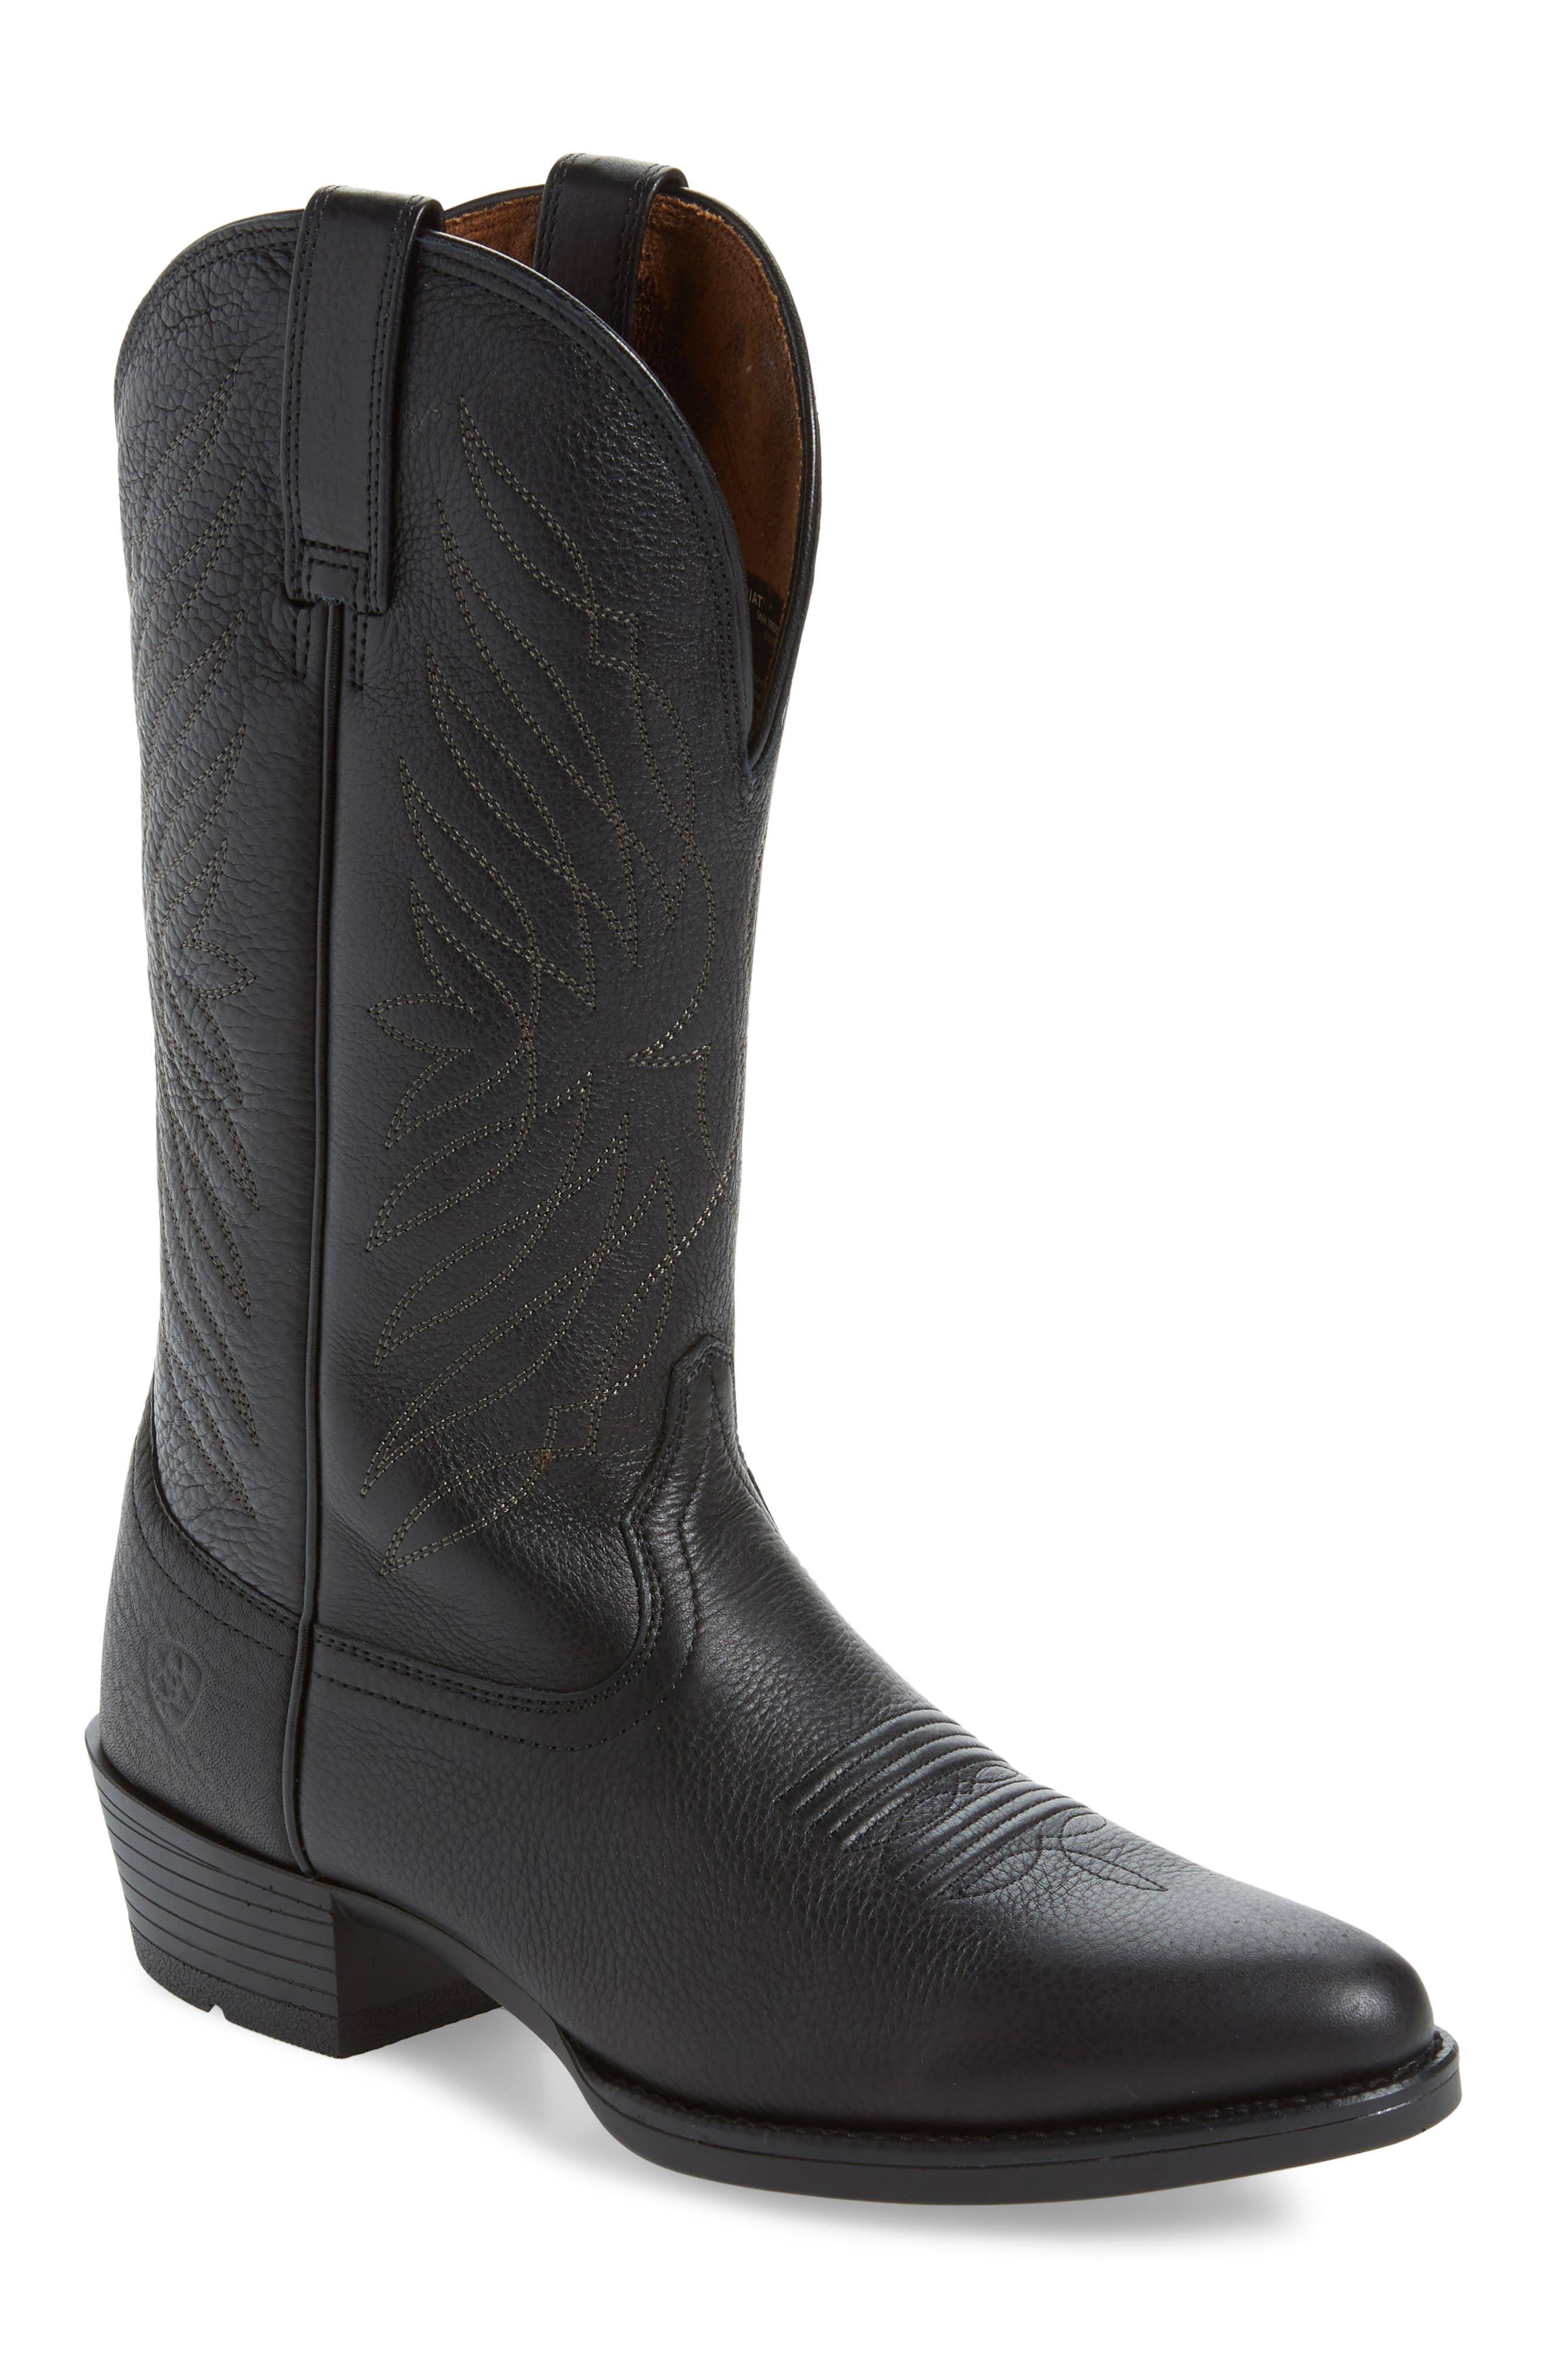 Ariat Uptown Ultra Cowboy Boot, Black